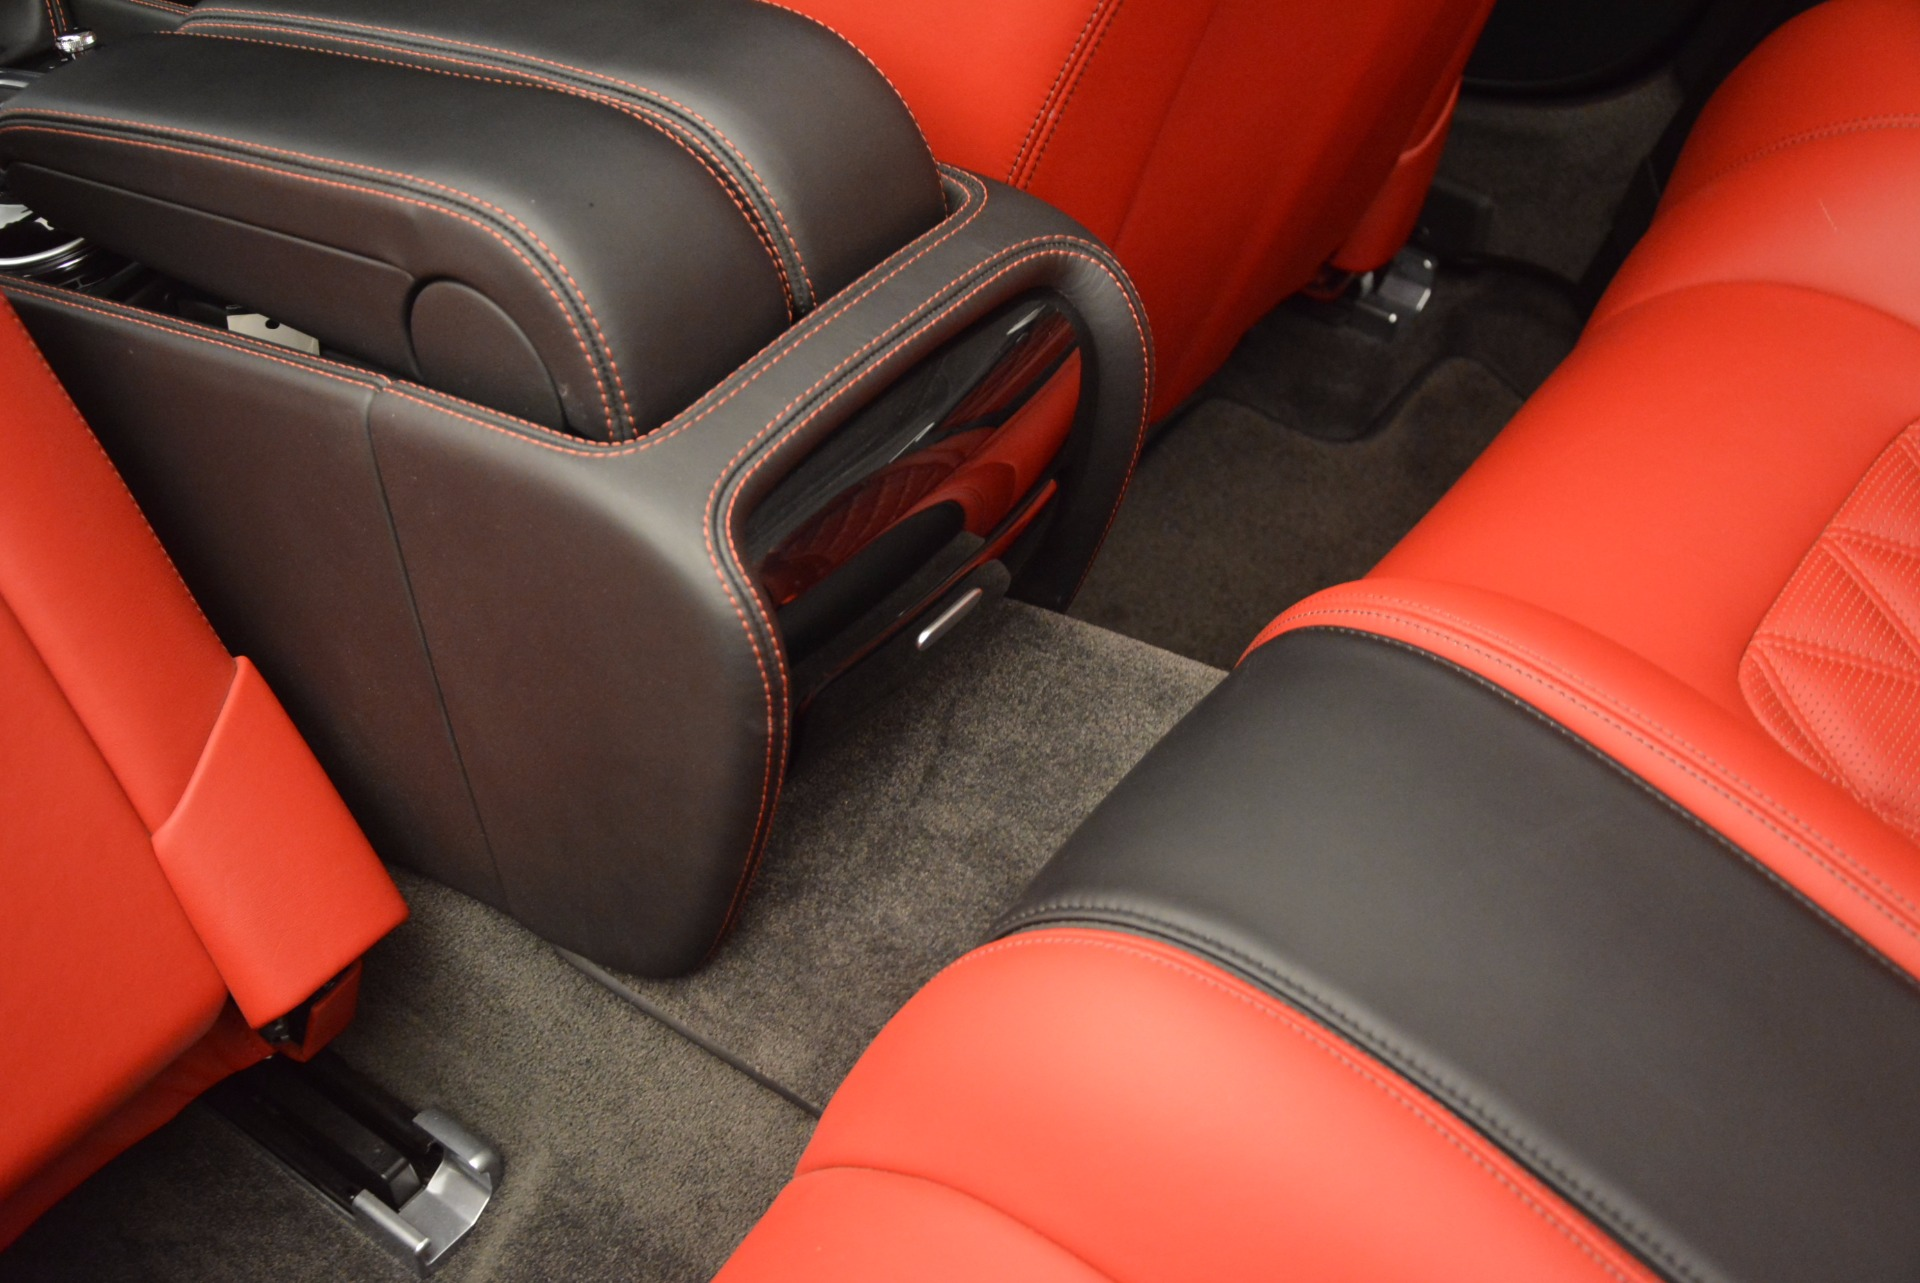 Used 2012 Bentley Continental GT W12 Convertible For Sale In Westport, CT 1104_p40